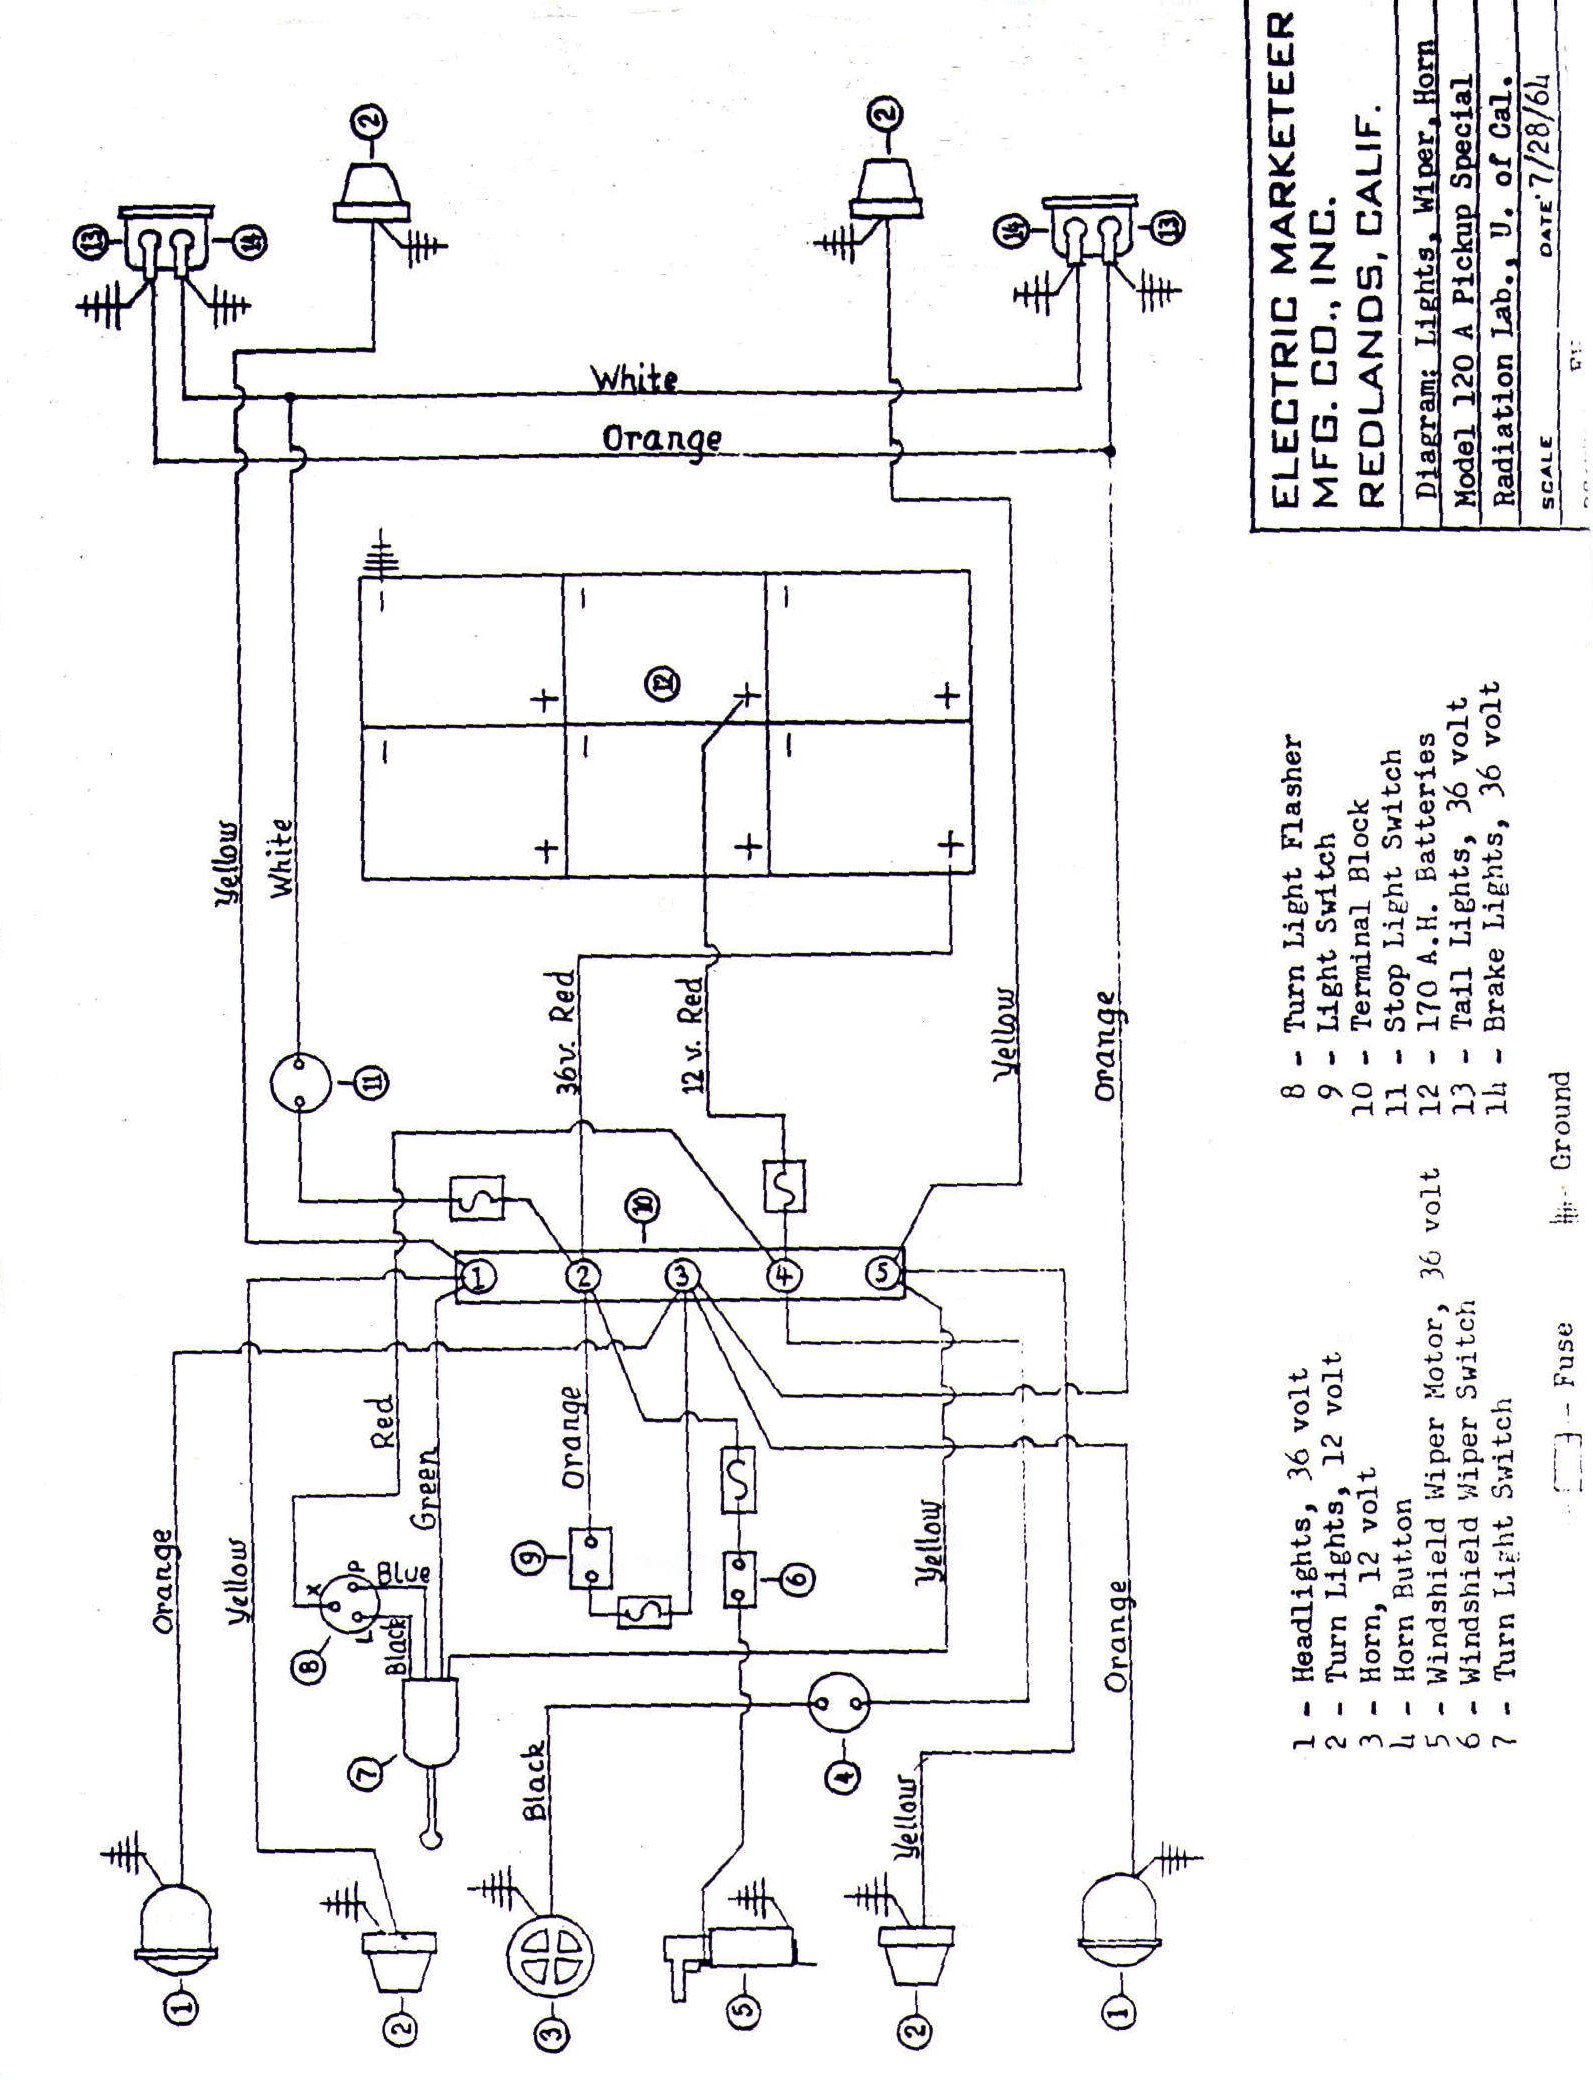 Markeeter_Wiring_Diagram_2 vintagegolfcartparts com westinghouse golf cart wiring diagram at bakdesigns.co